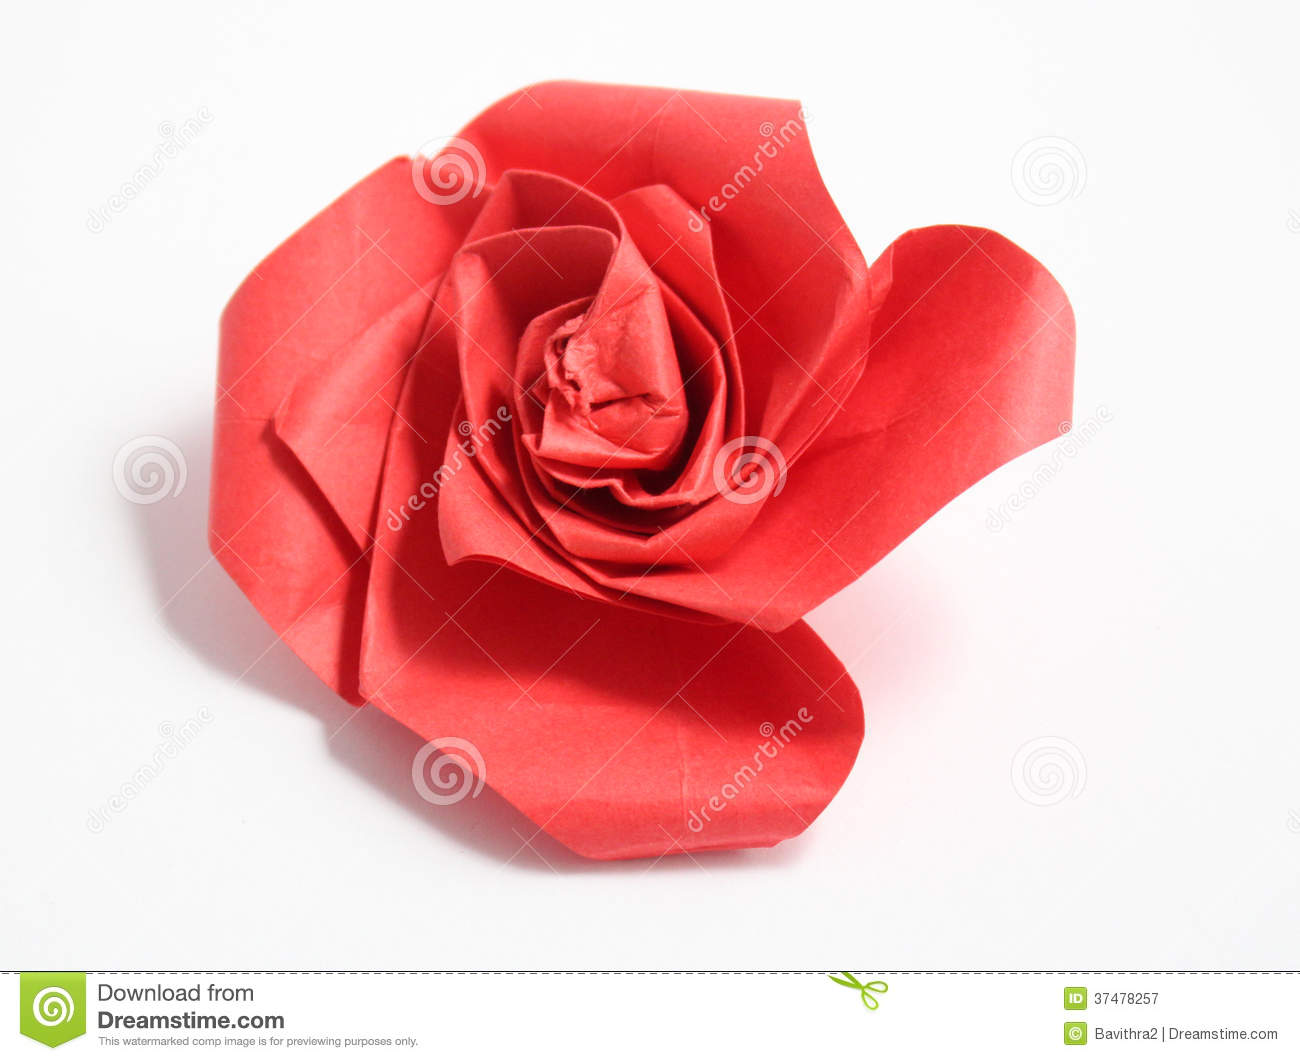 Complex Origami Flowers Origami Tutorial Lets Make It